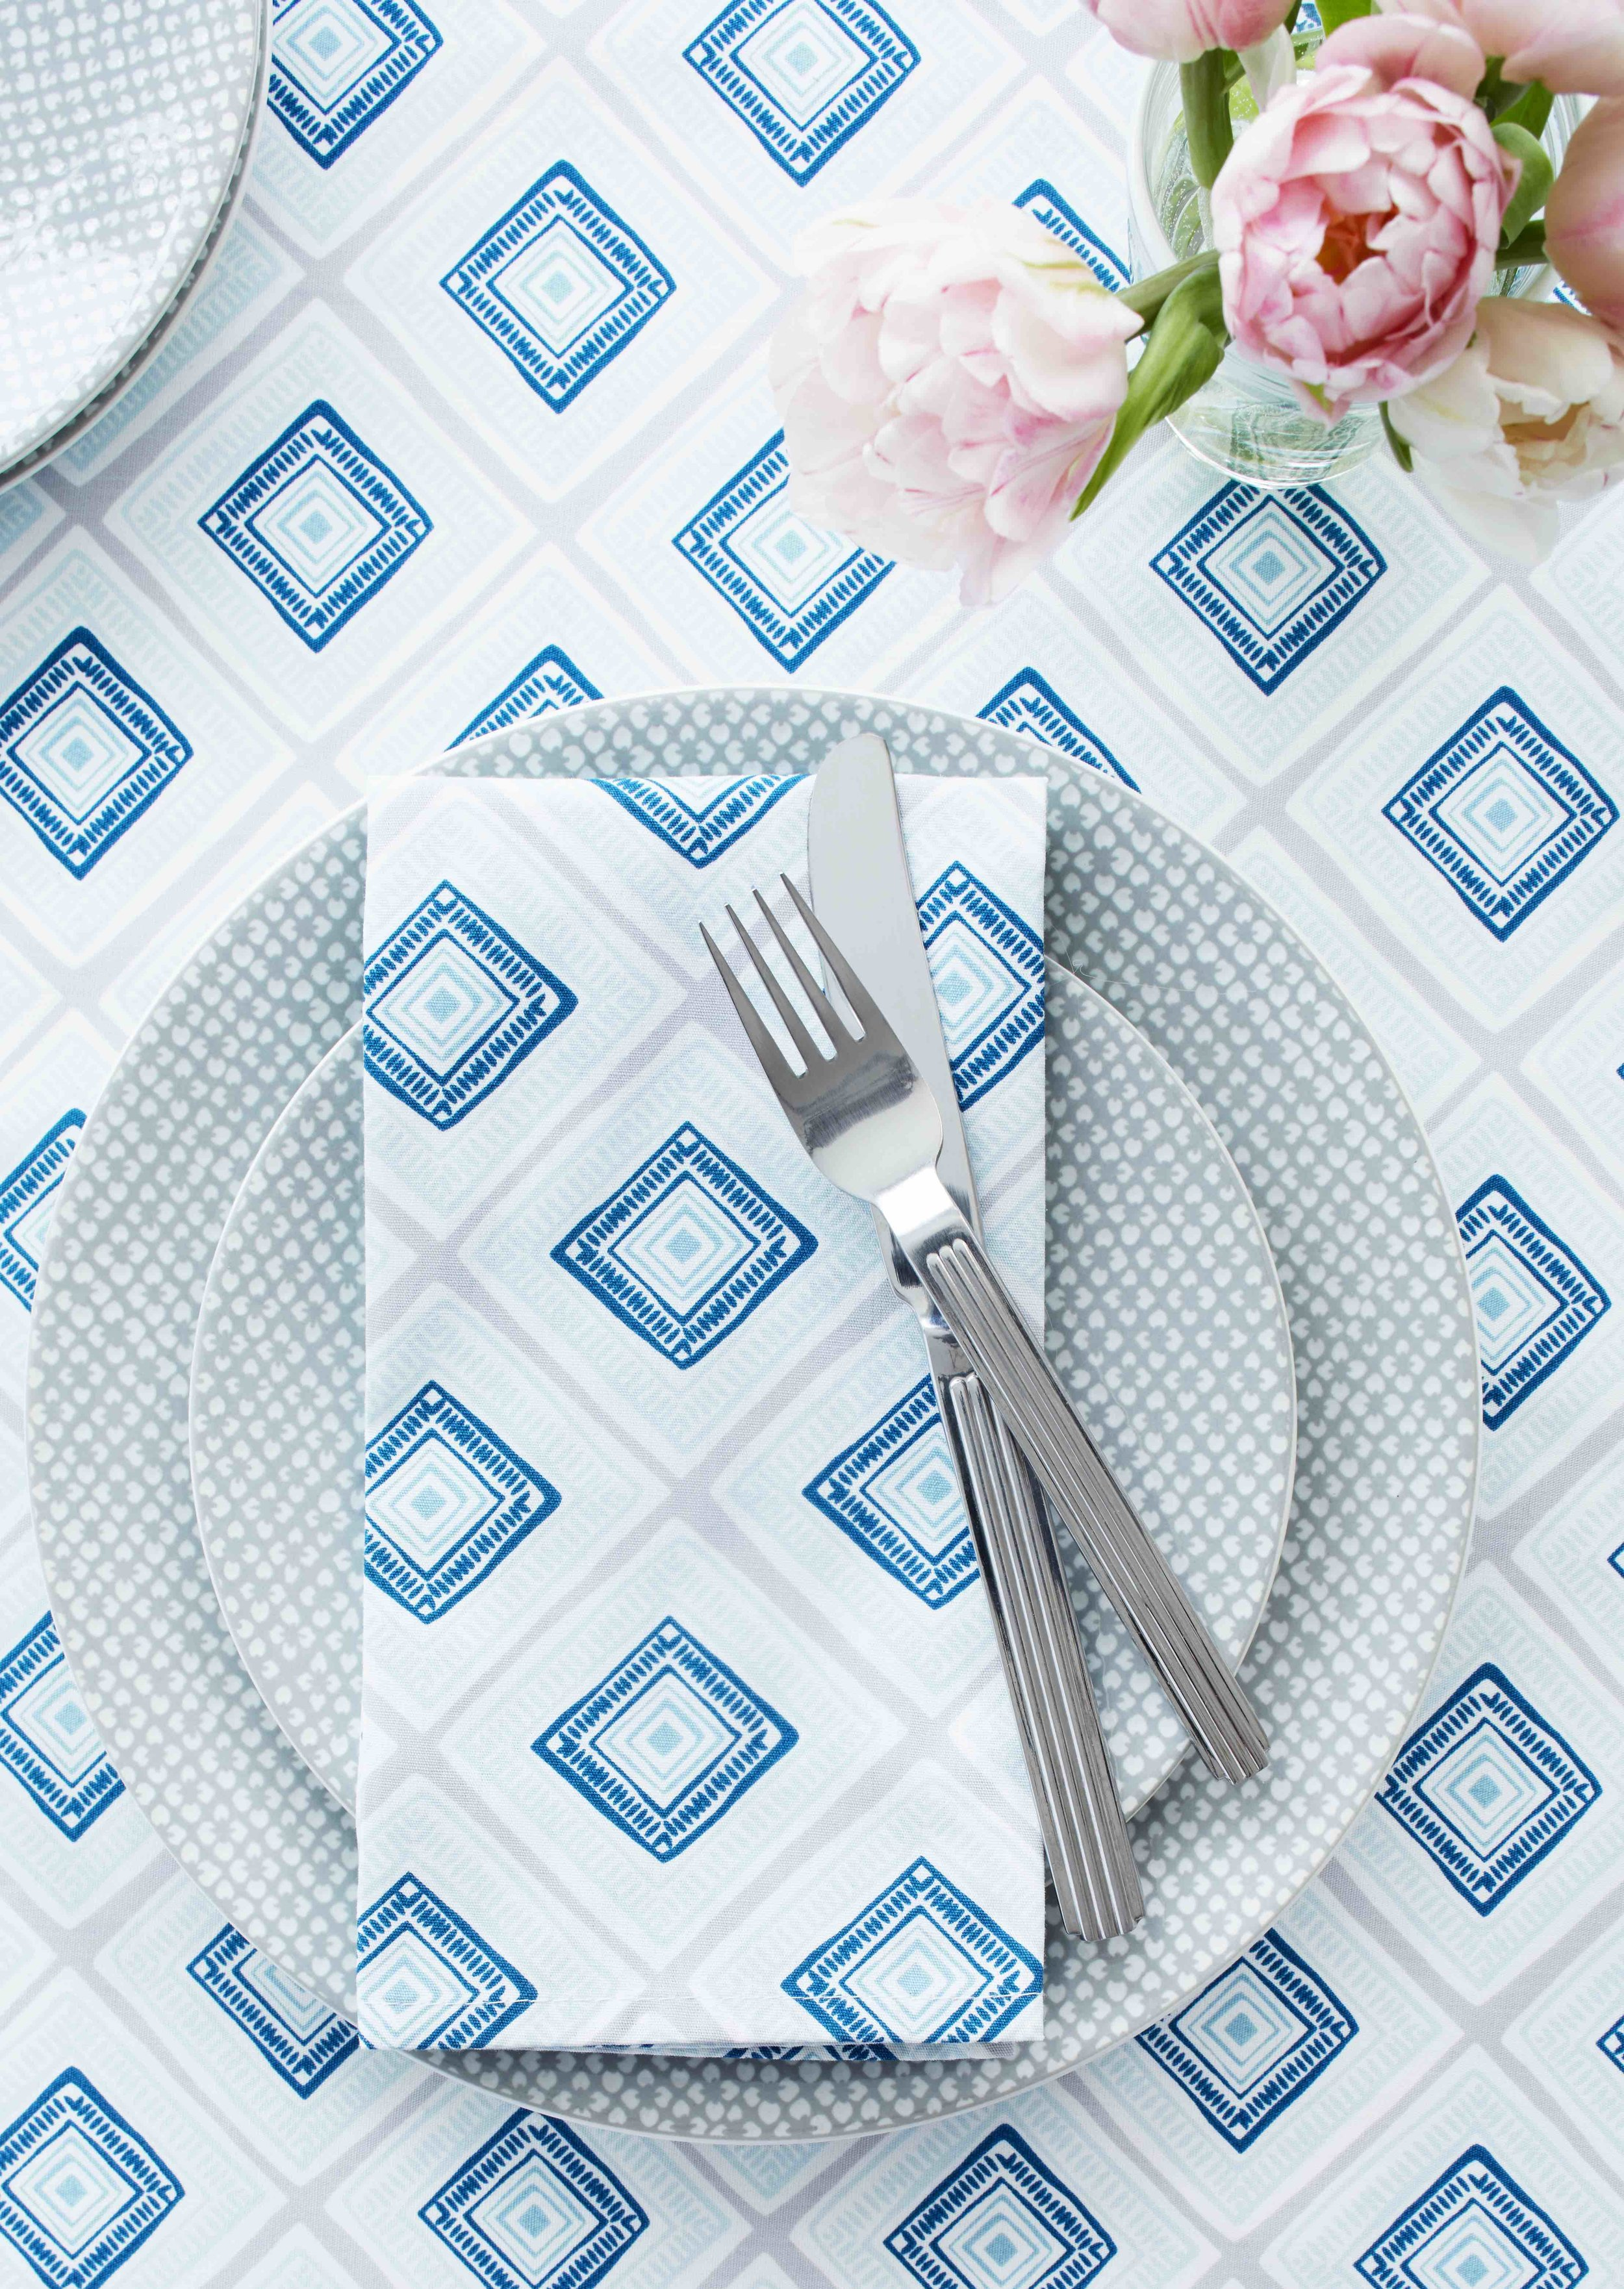 5. Diamond Lines Napkin and Tablecloth